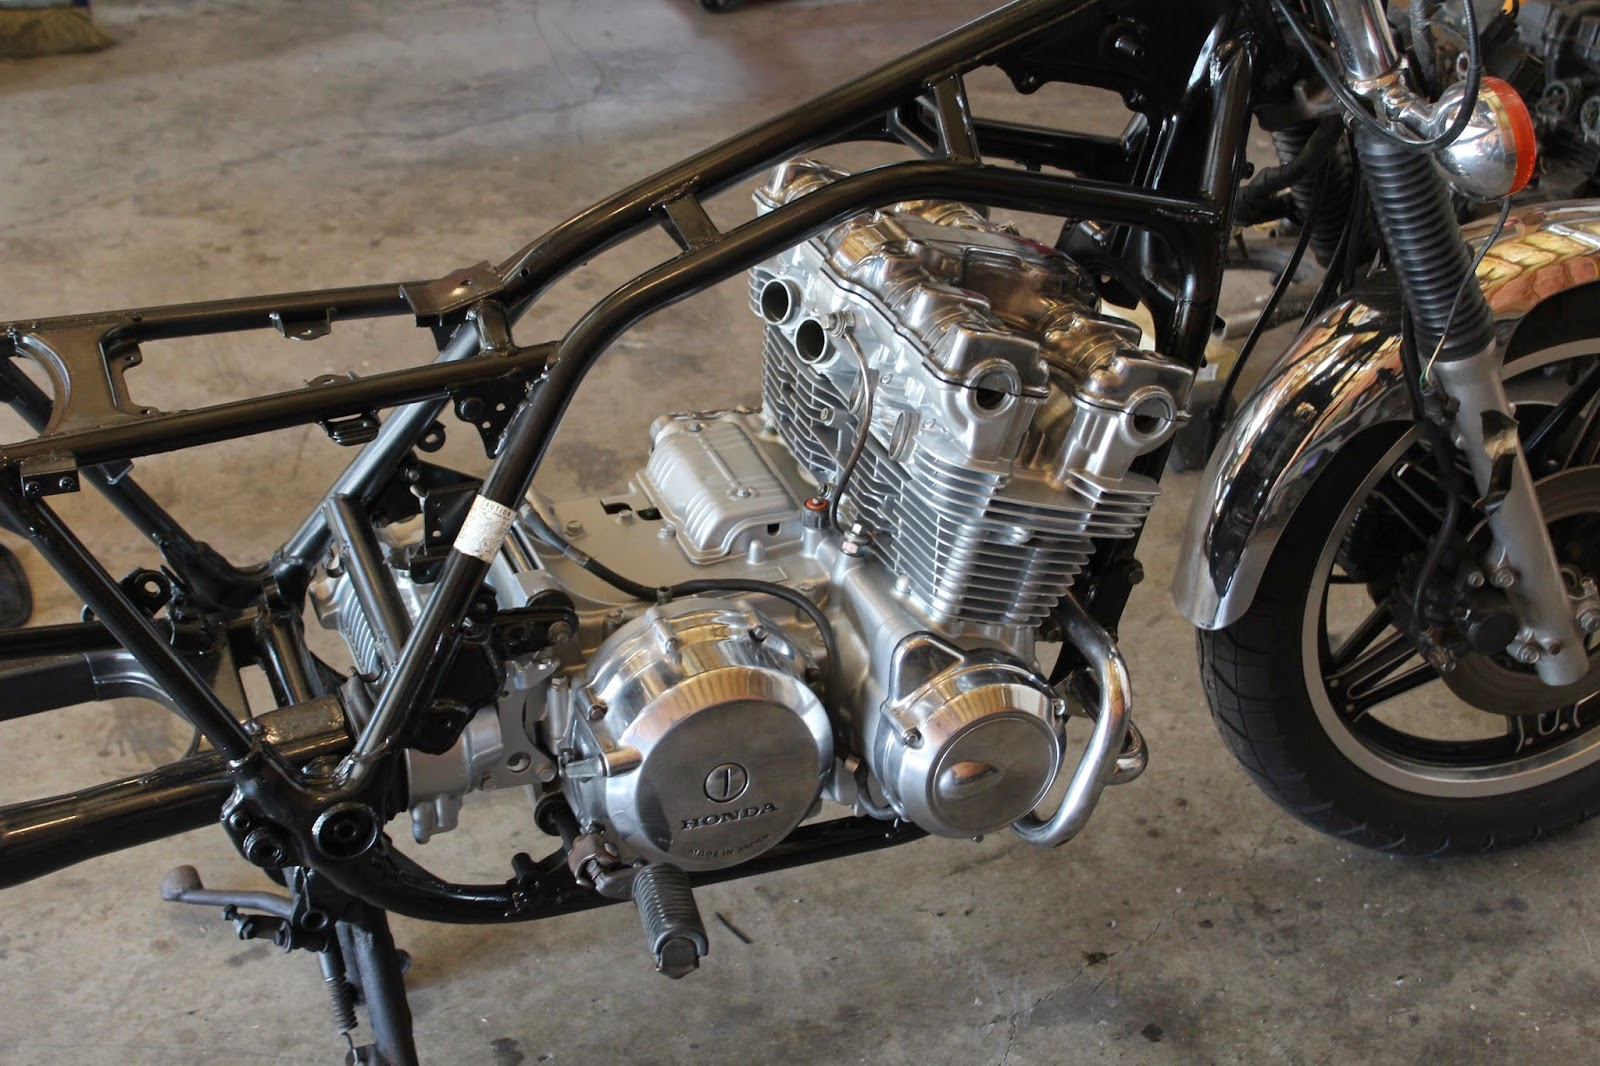 The CB900 is finished and